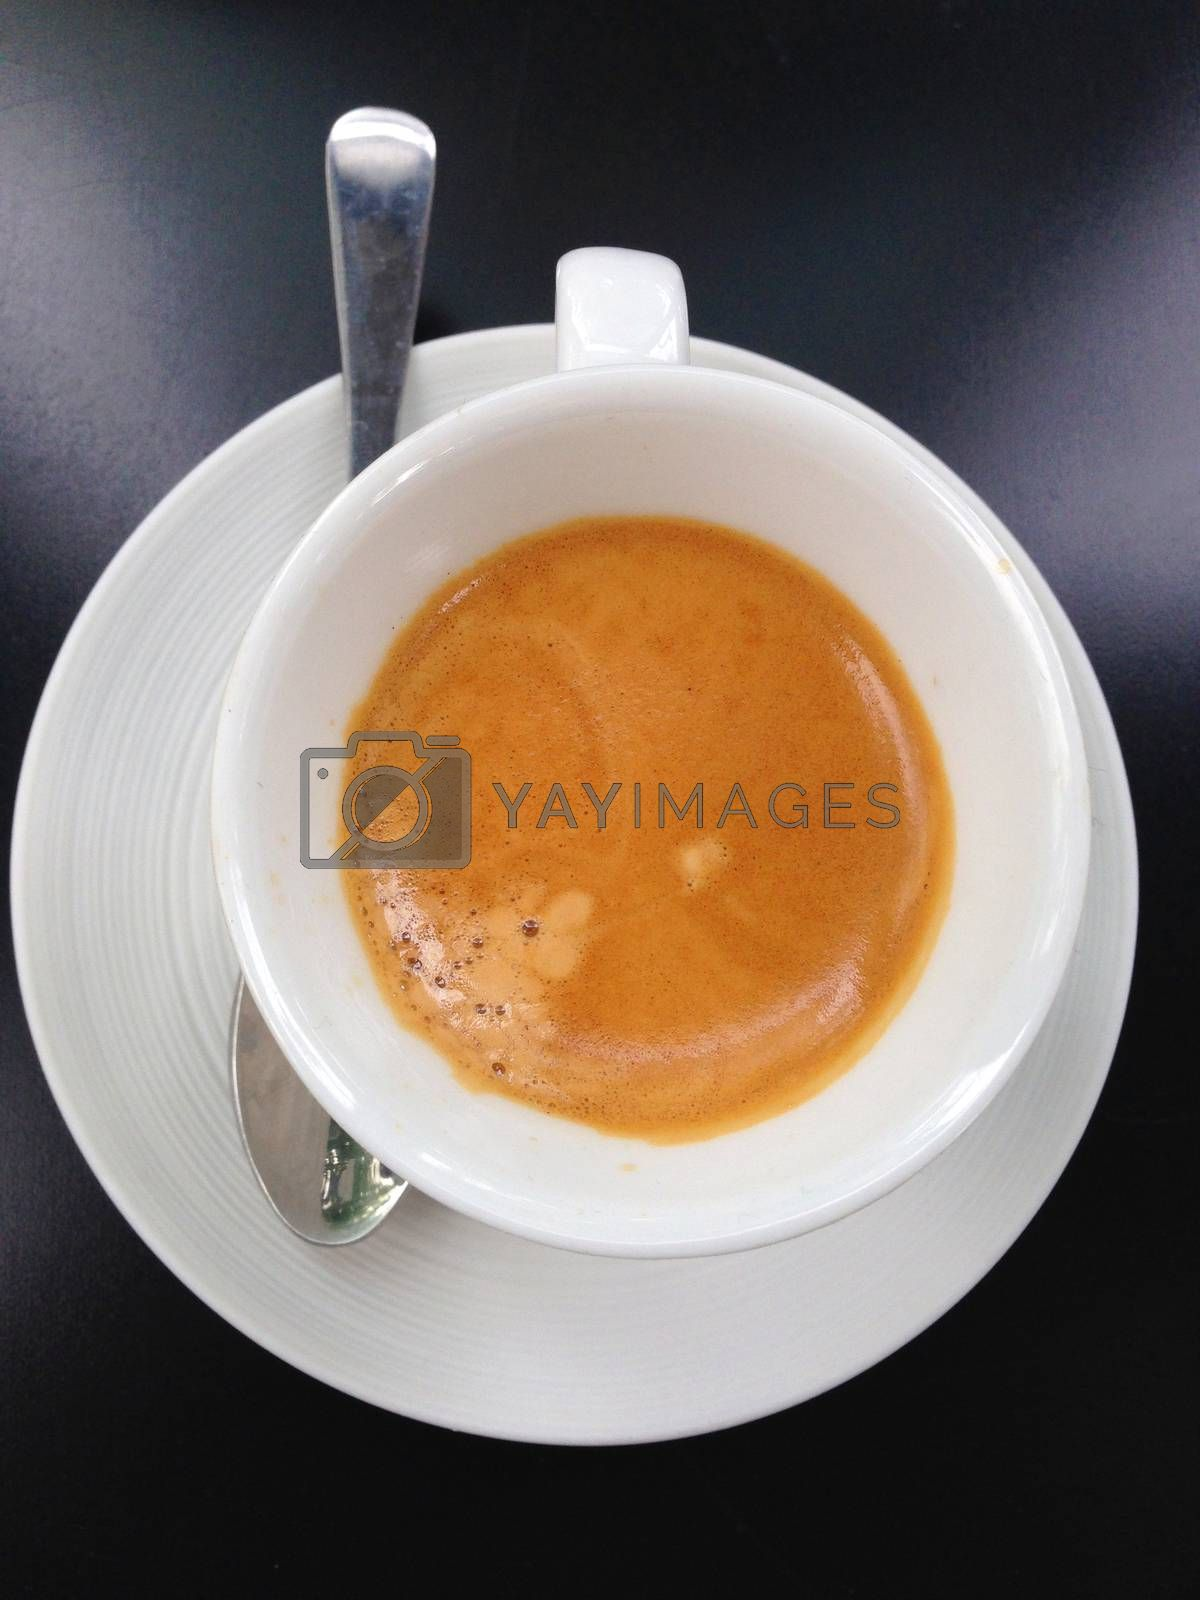 Royalty free image of a cup of coffee, the espresso short by pandara